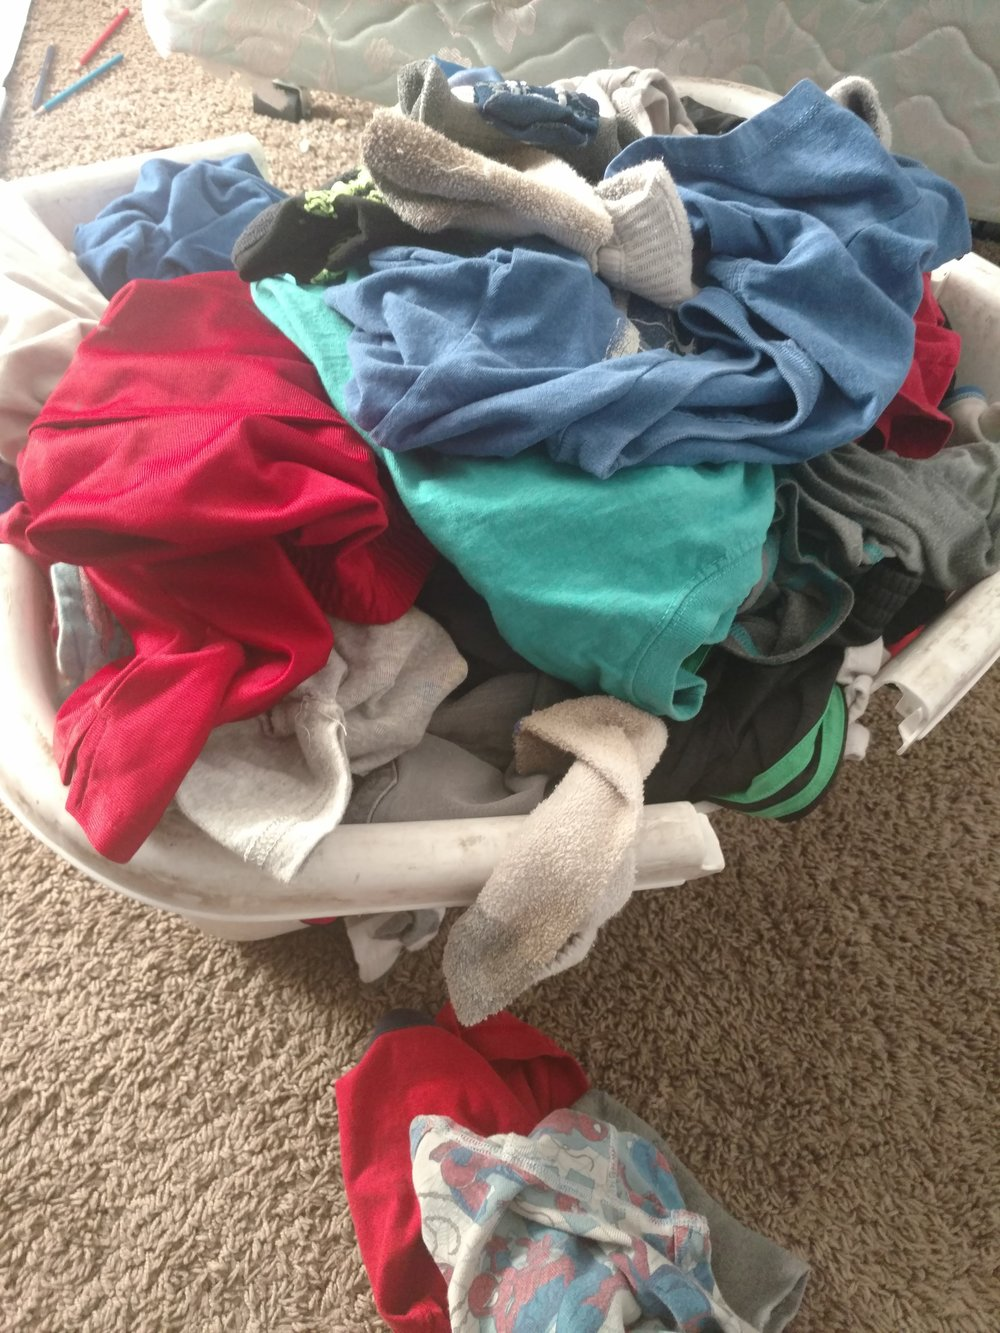 Here is a basket of clean clothes from my little boys. I laughed when I looked at the shape of my laundry basket. Apparently, I need to get some new ones because these are 17 years old and completely falling apart.